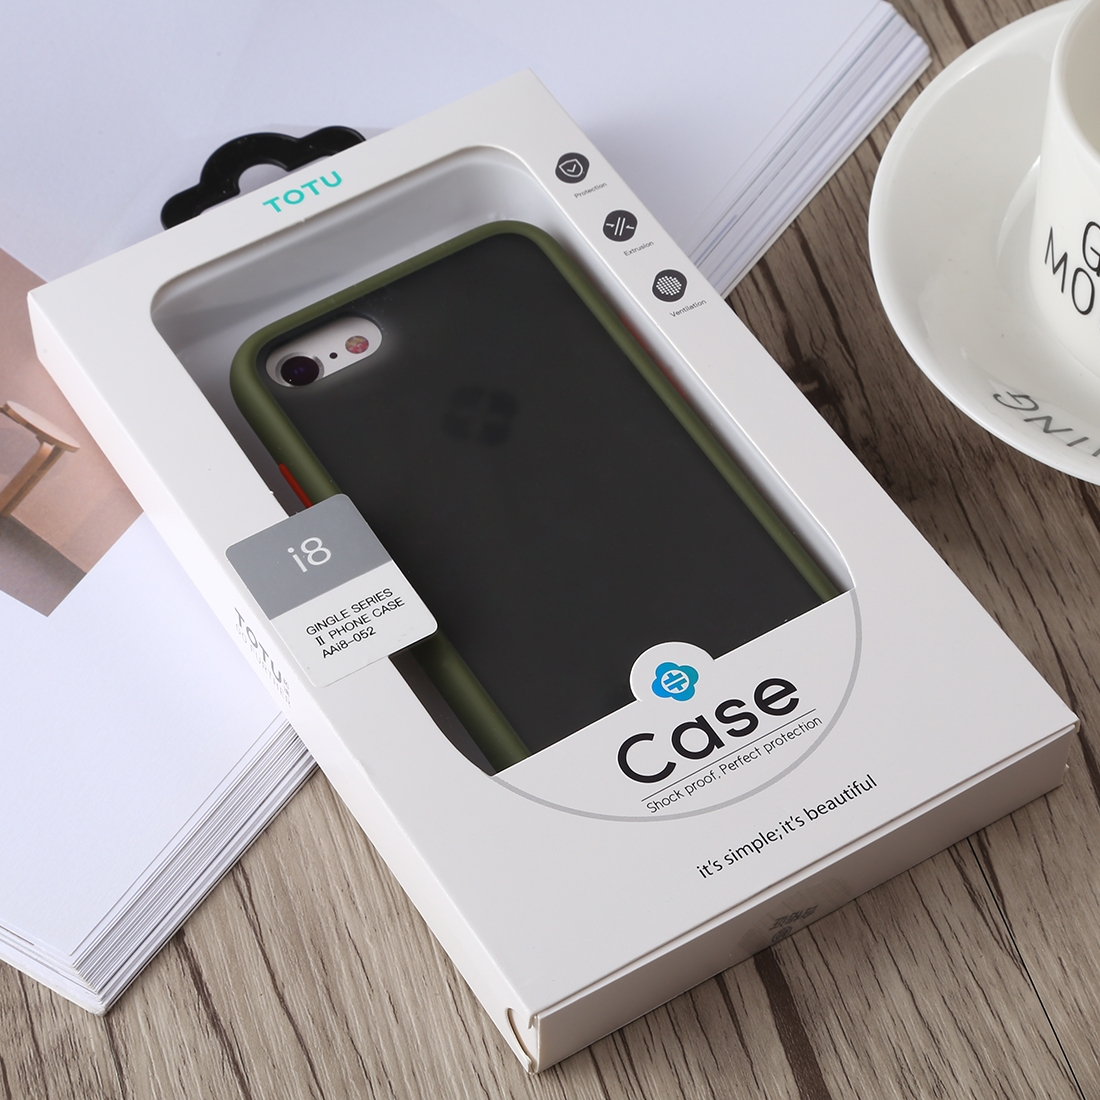 TOTUDESIGN Gingle Series II Shockproof TPU+PC Case for iPhone 8 & 7 (Army Green)